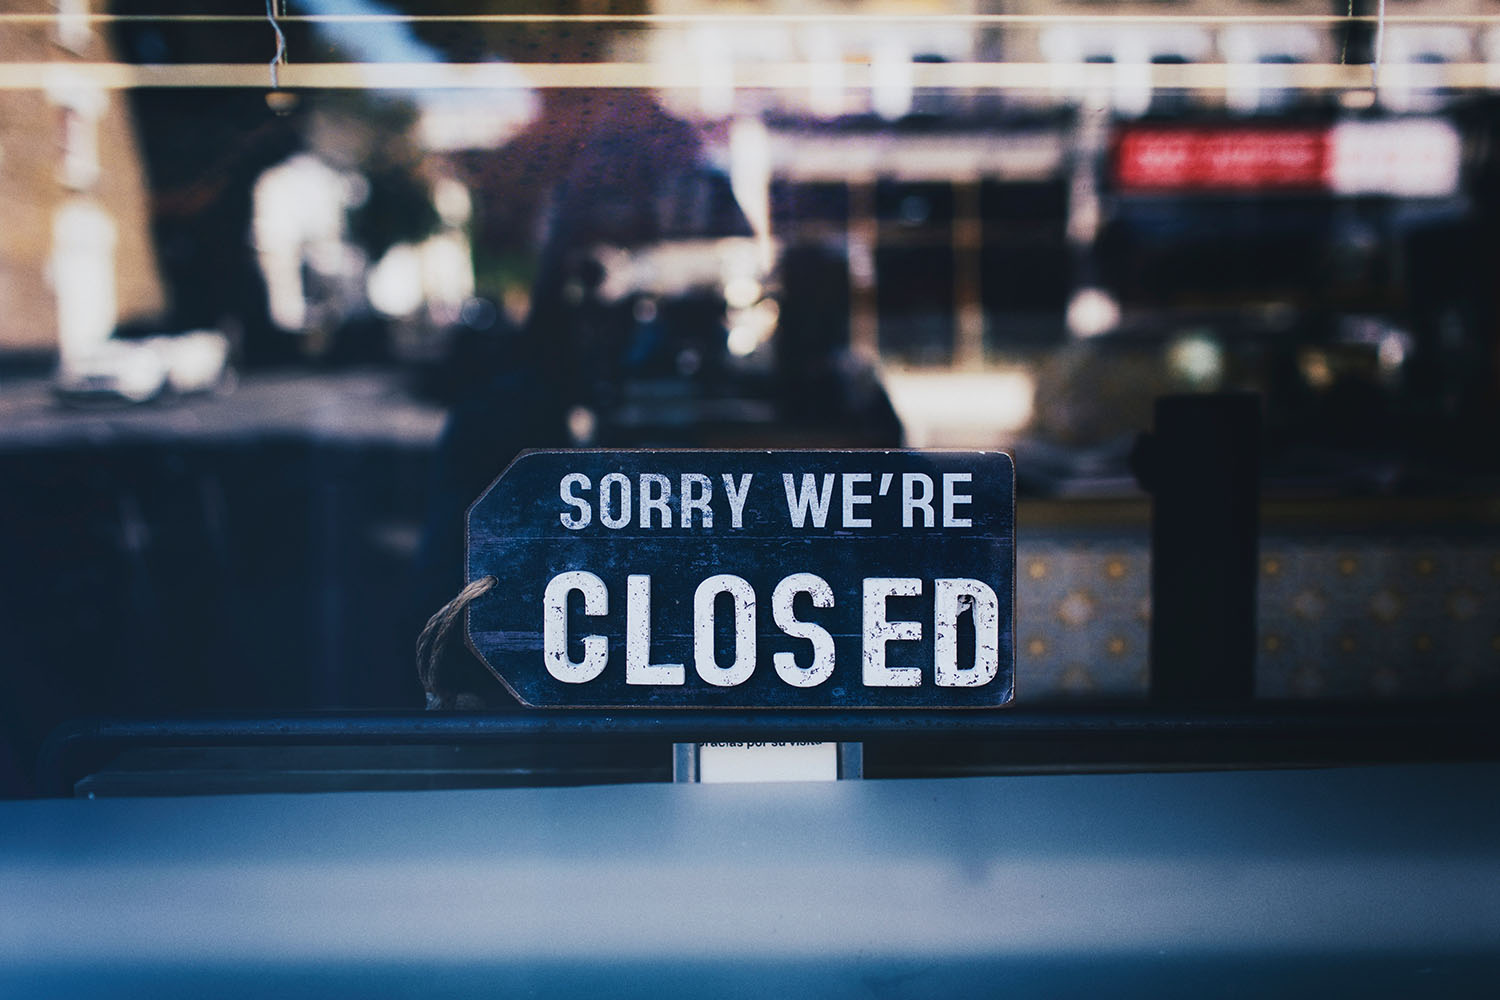 close-up-photo-of-sorry-we-re-closed-sign-on-glass-window-2467649